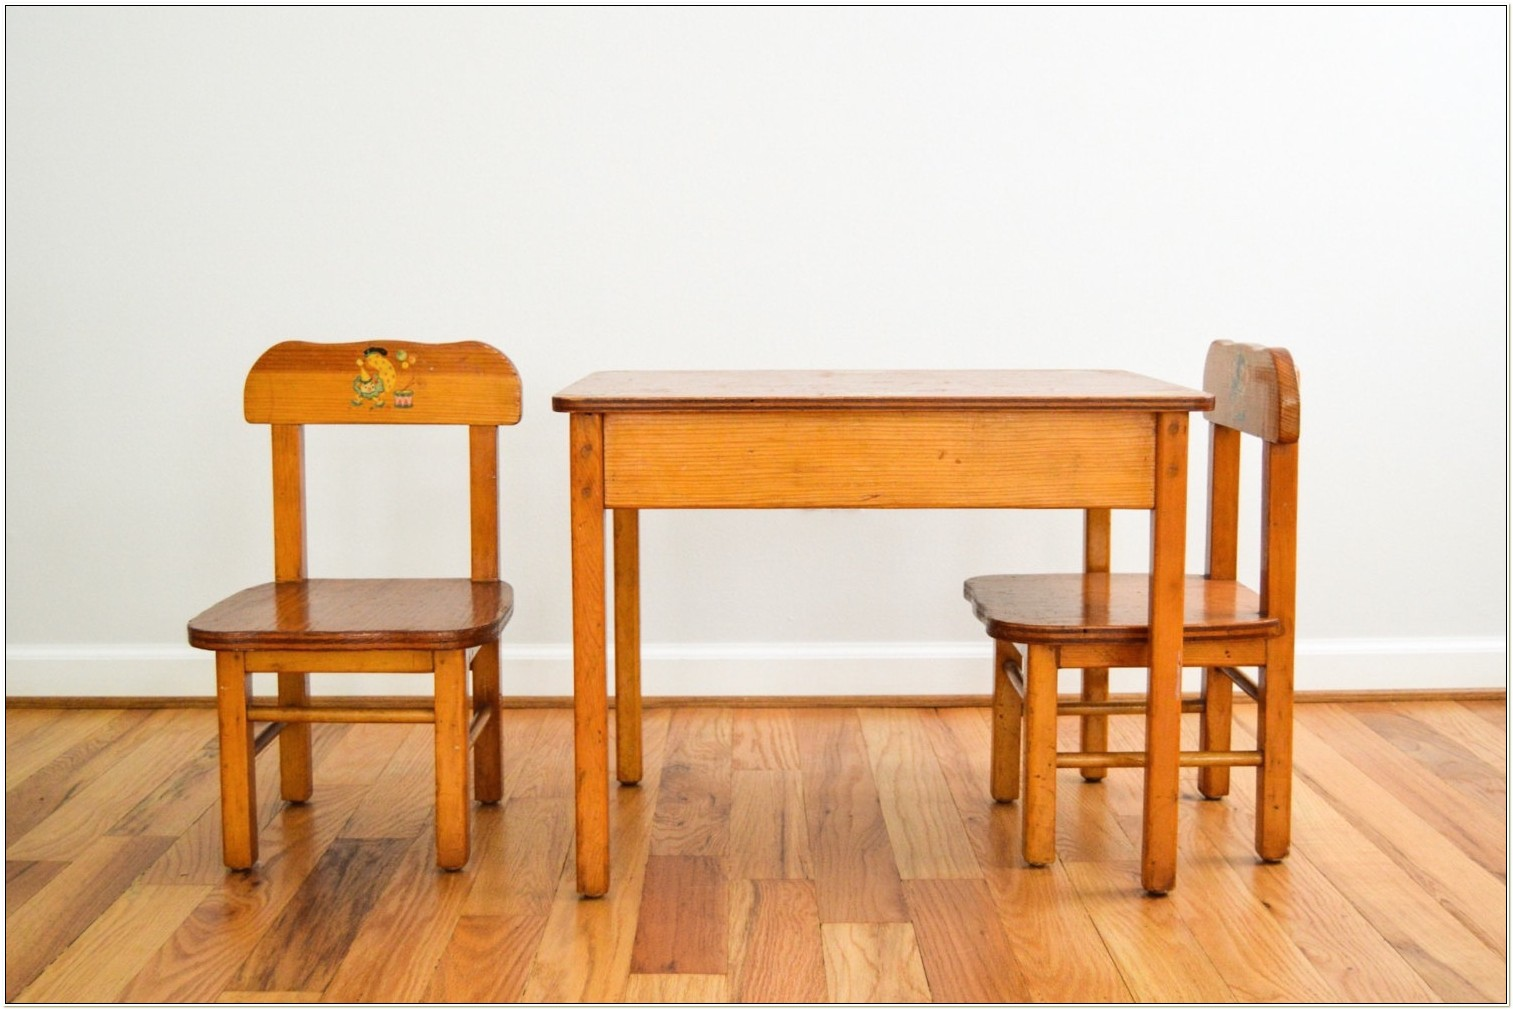 Child Size Wood Table And Chairs